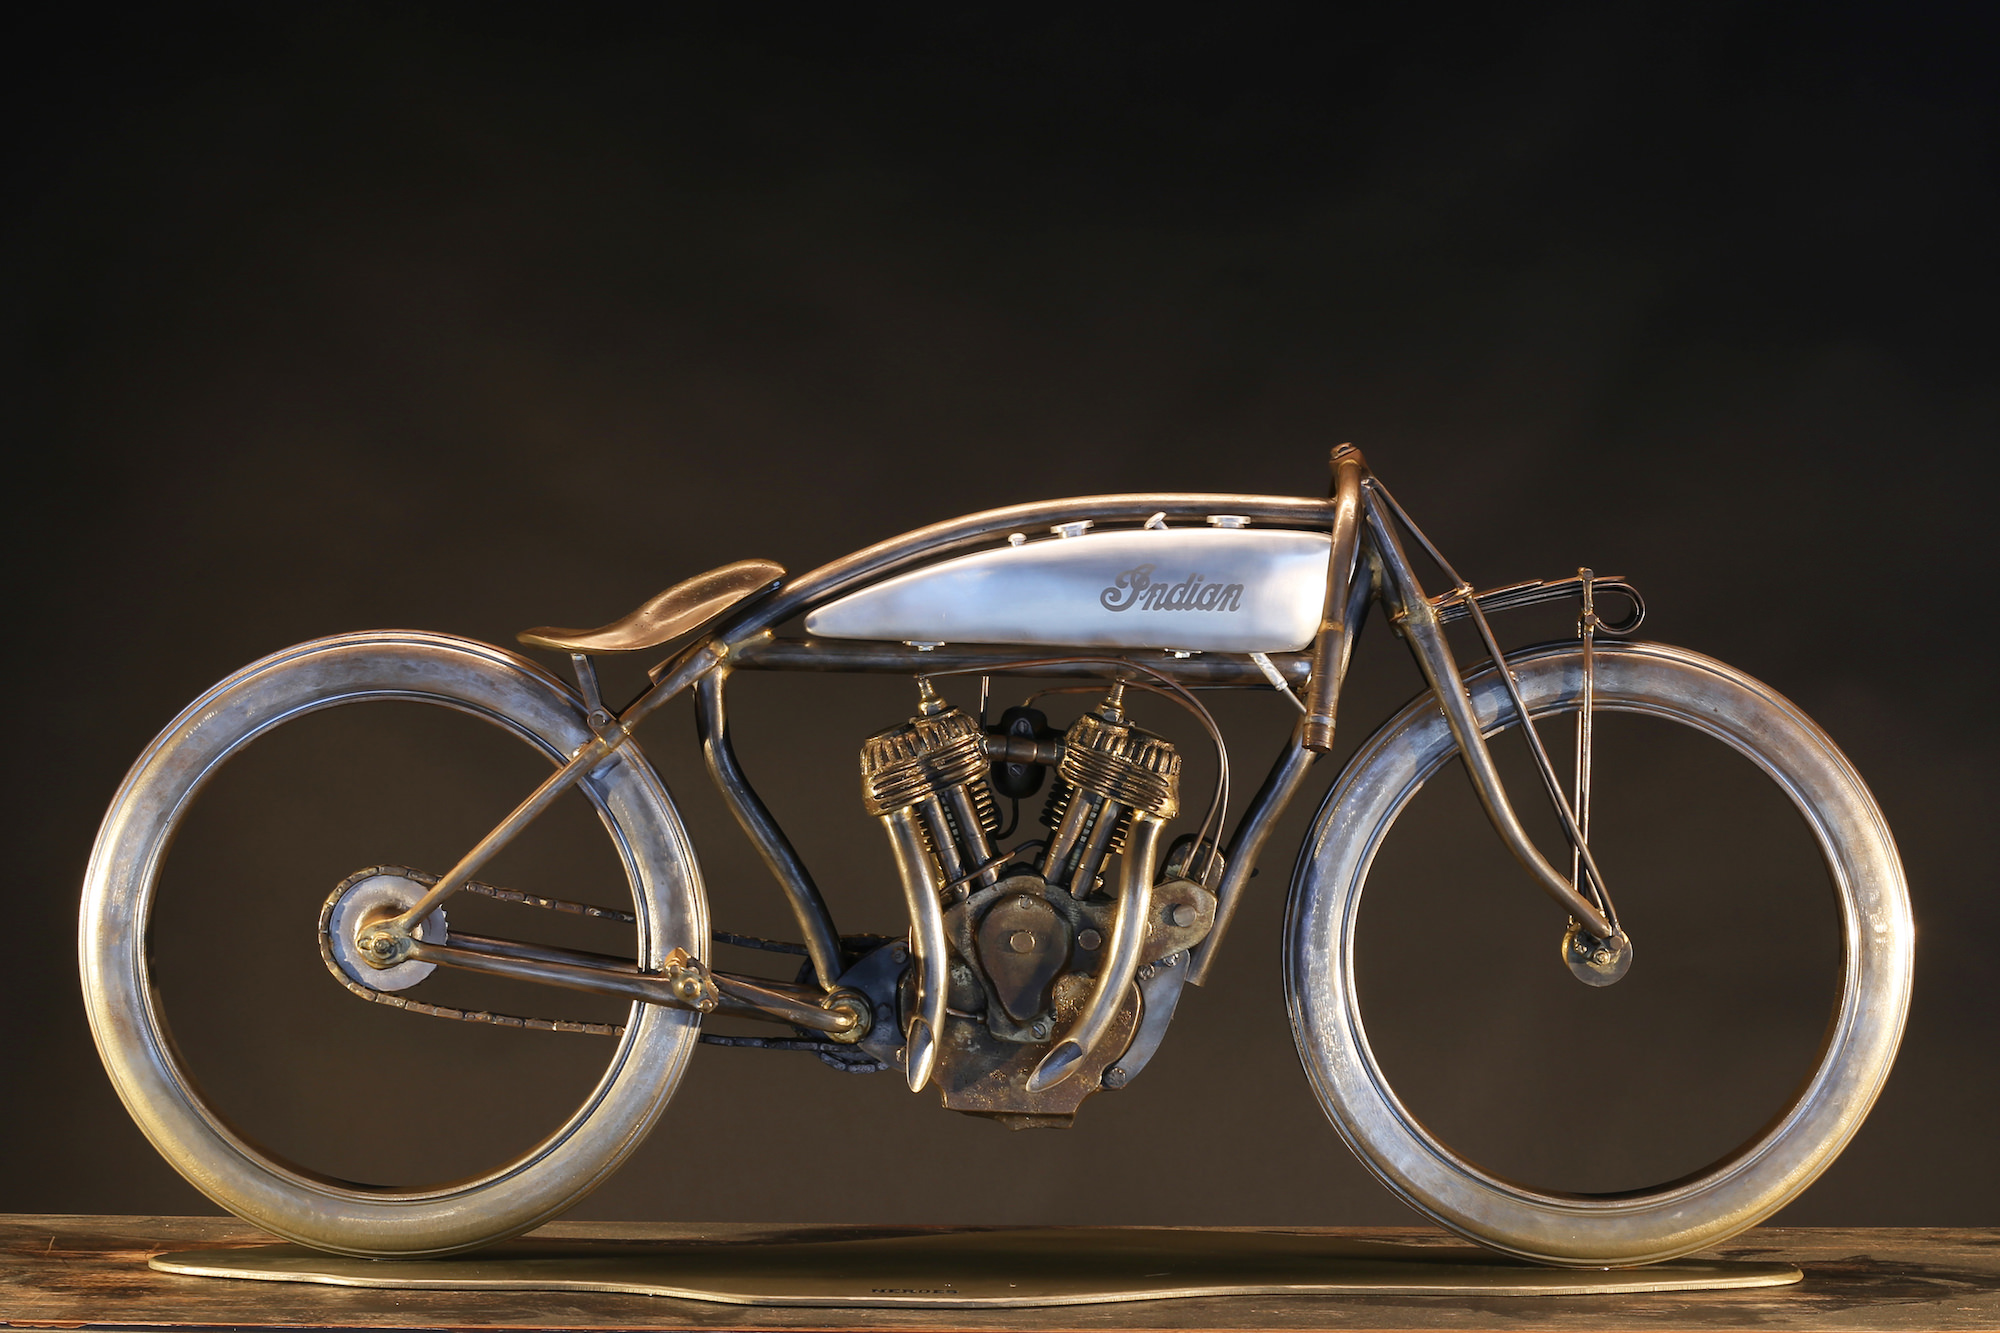 Indian Board Track Motorcycle Sculptures